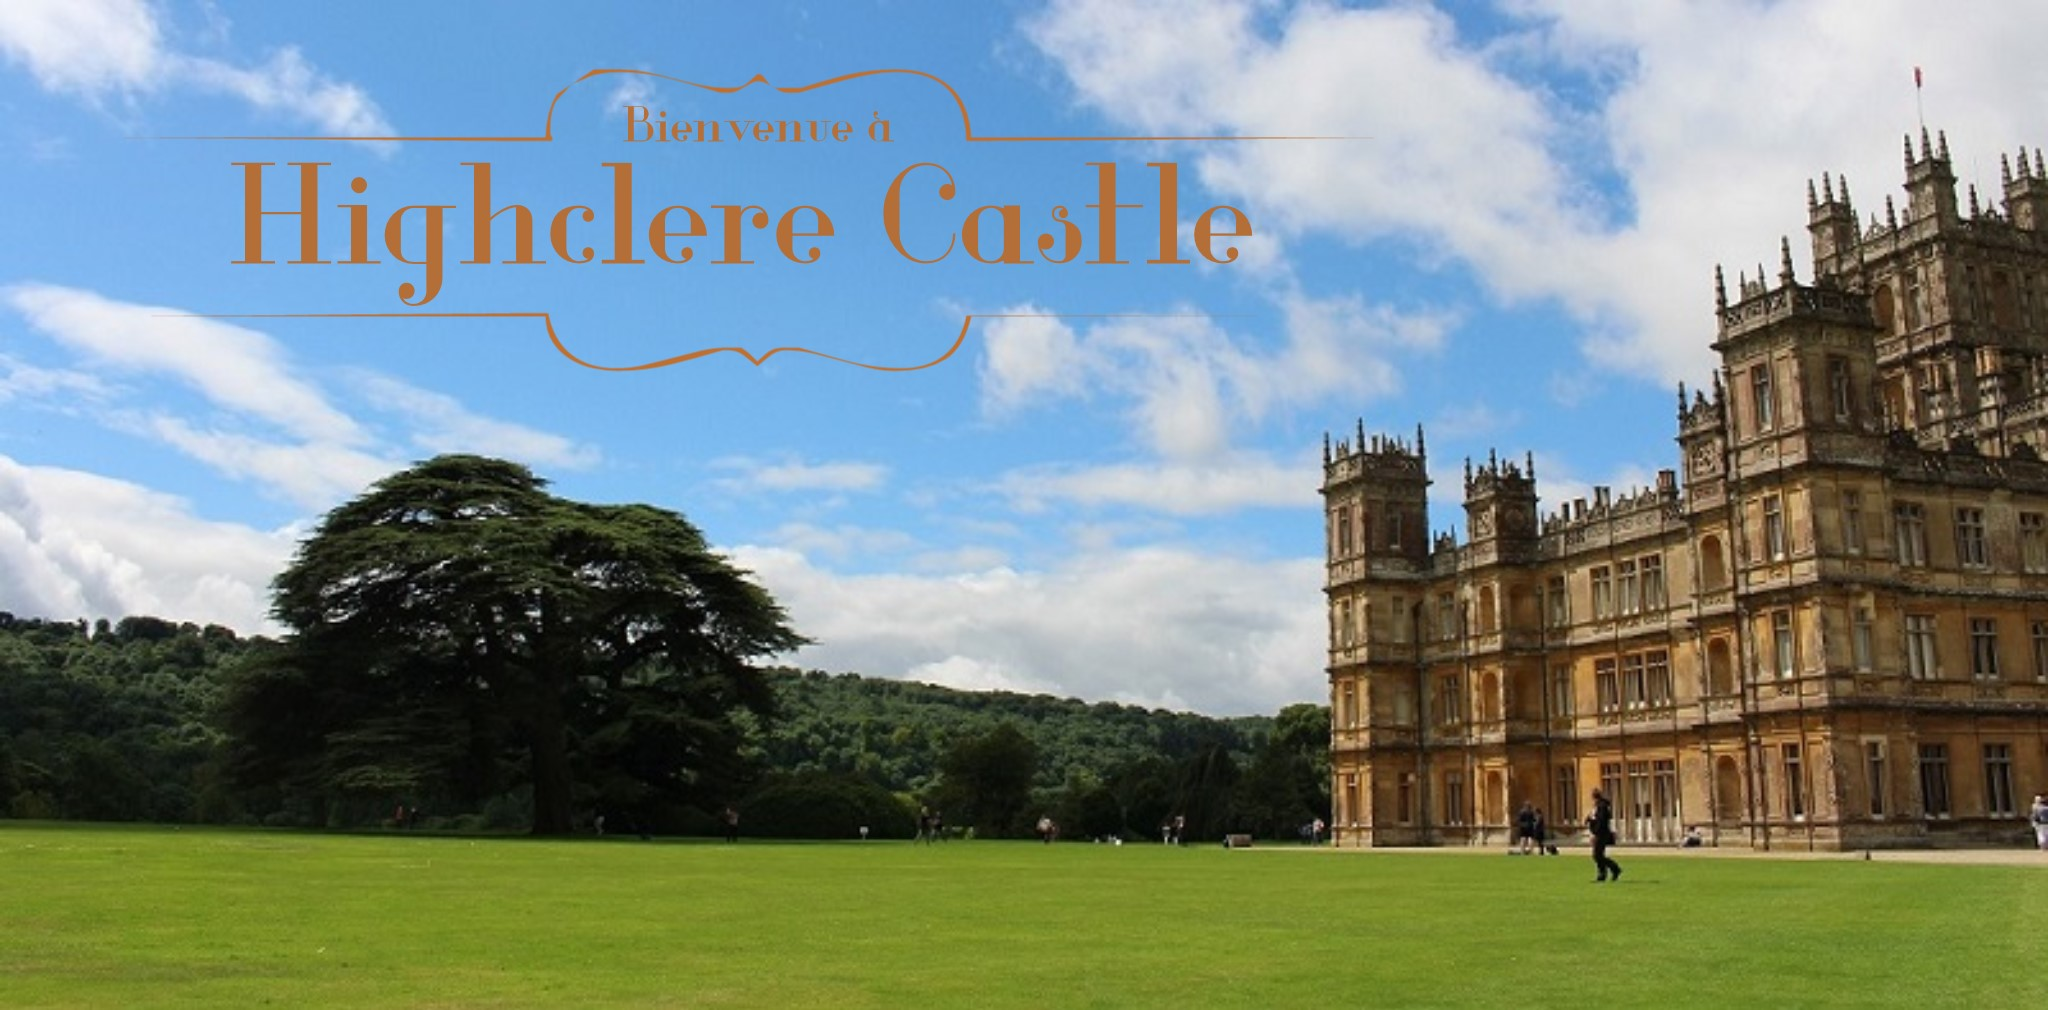 Highclere castle le ch teau de downton abbey globe trottine - Chateau downton abbey ...